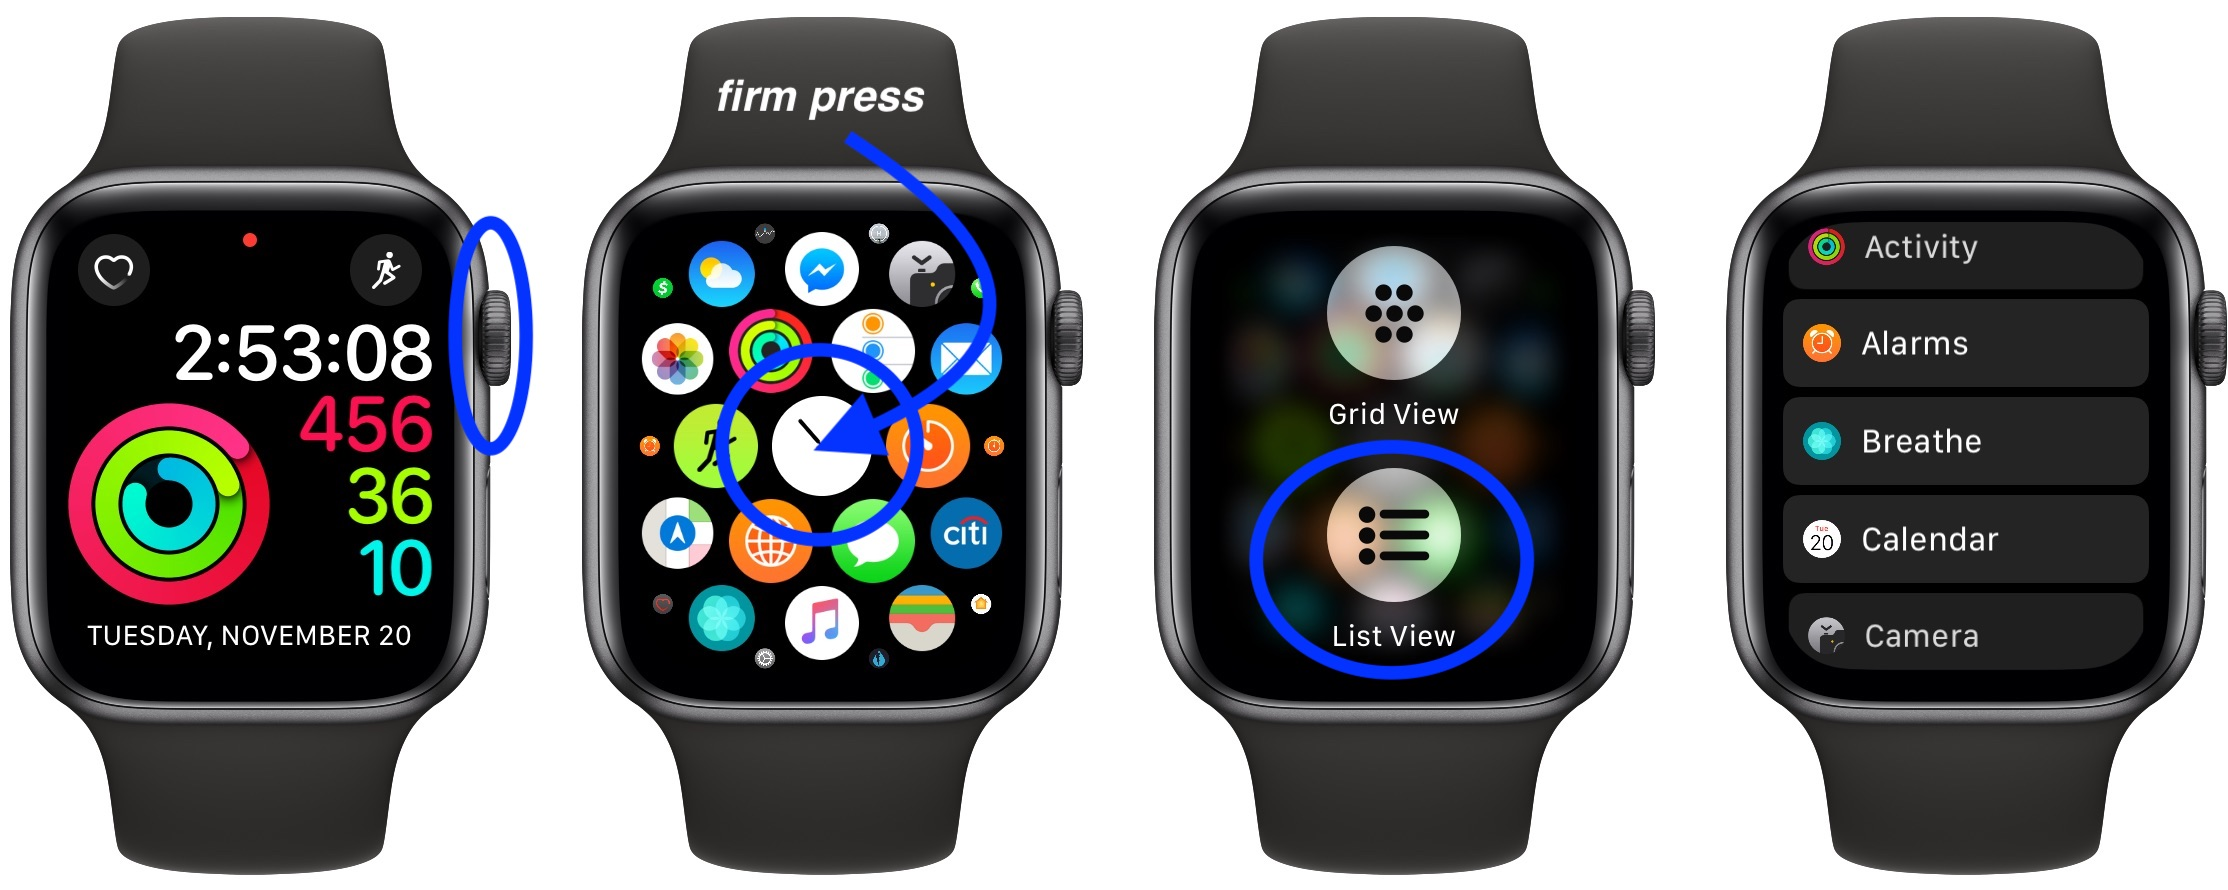 To switch to list view or grid view on Apple Watch